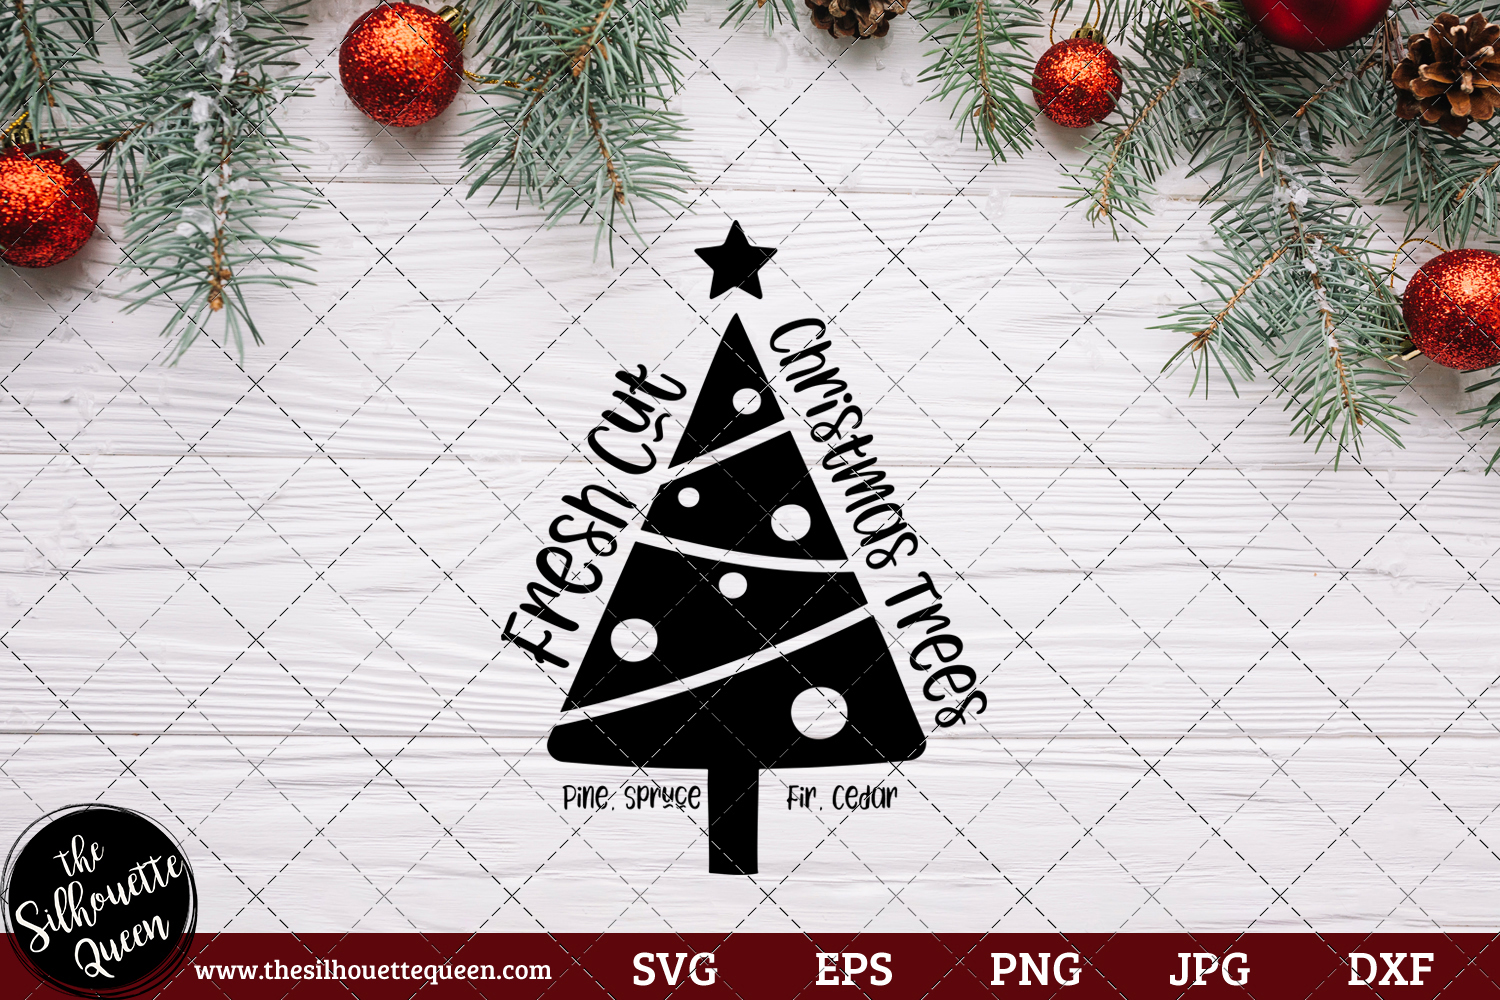 Fresh Cut Christmas Trees Pine Fir Spruce Cedar Saying Svg Christmas Svg Holiday Svg Holiday Saying Jpg Eps Dxf Png Cut File For Cricut Clipart Silhouette The Silhouette Queen